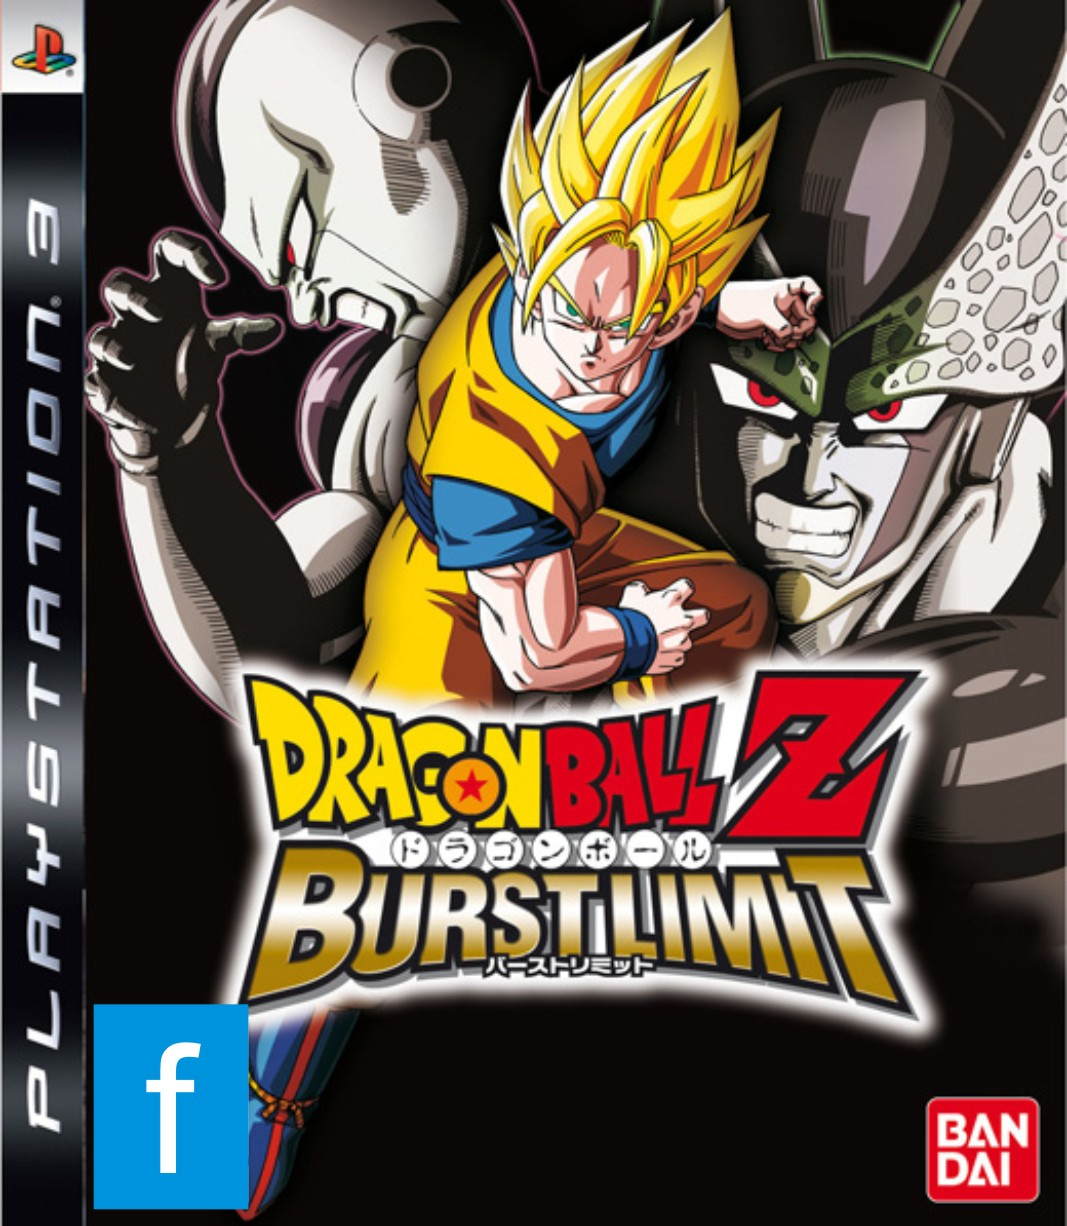 ps3 iso game torrents